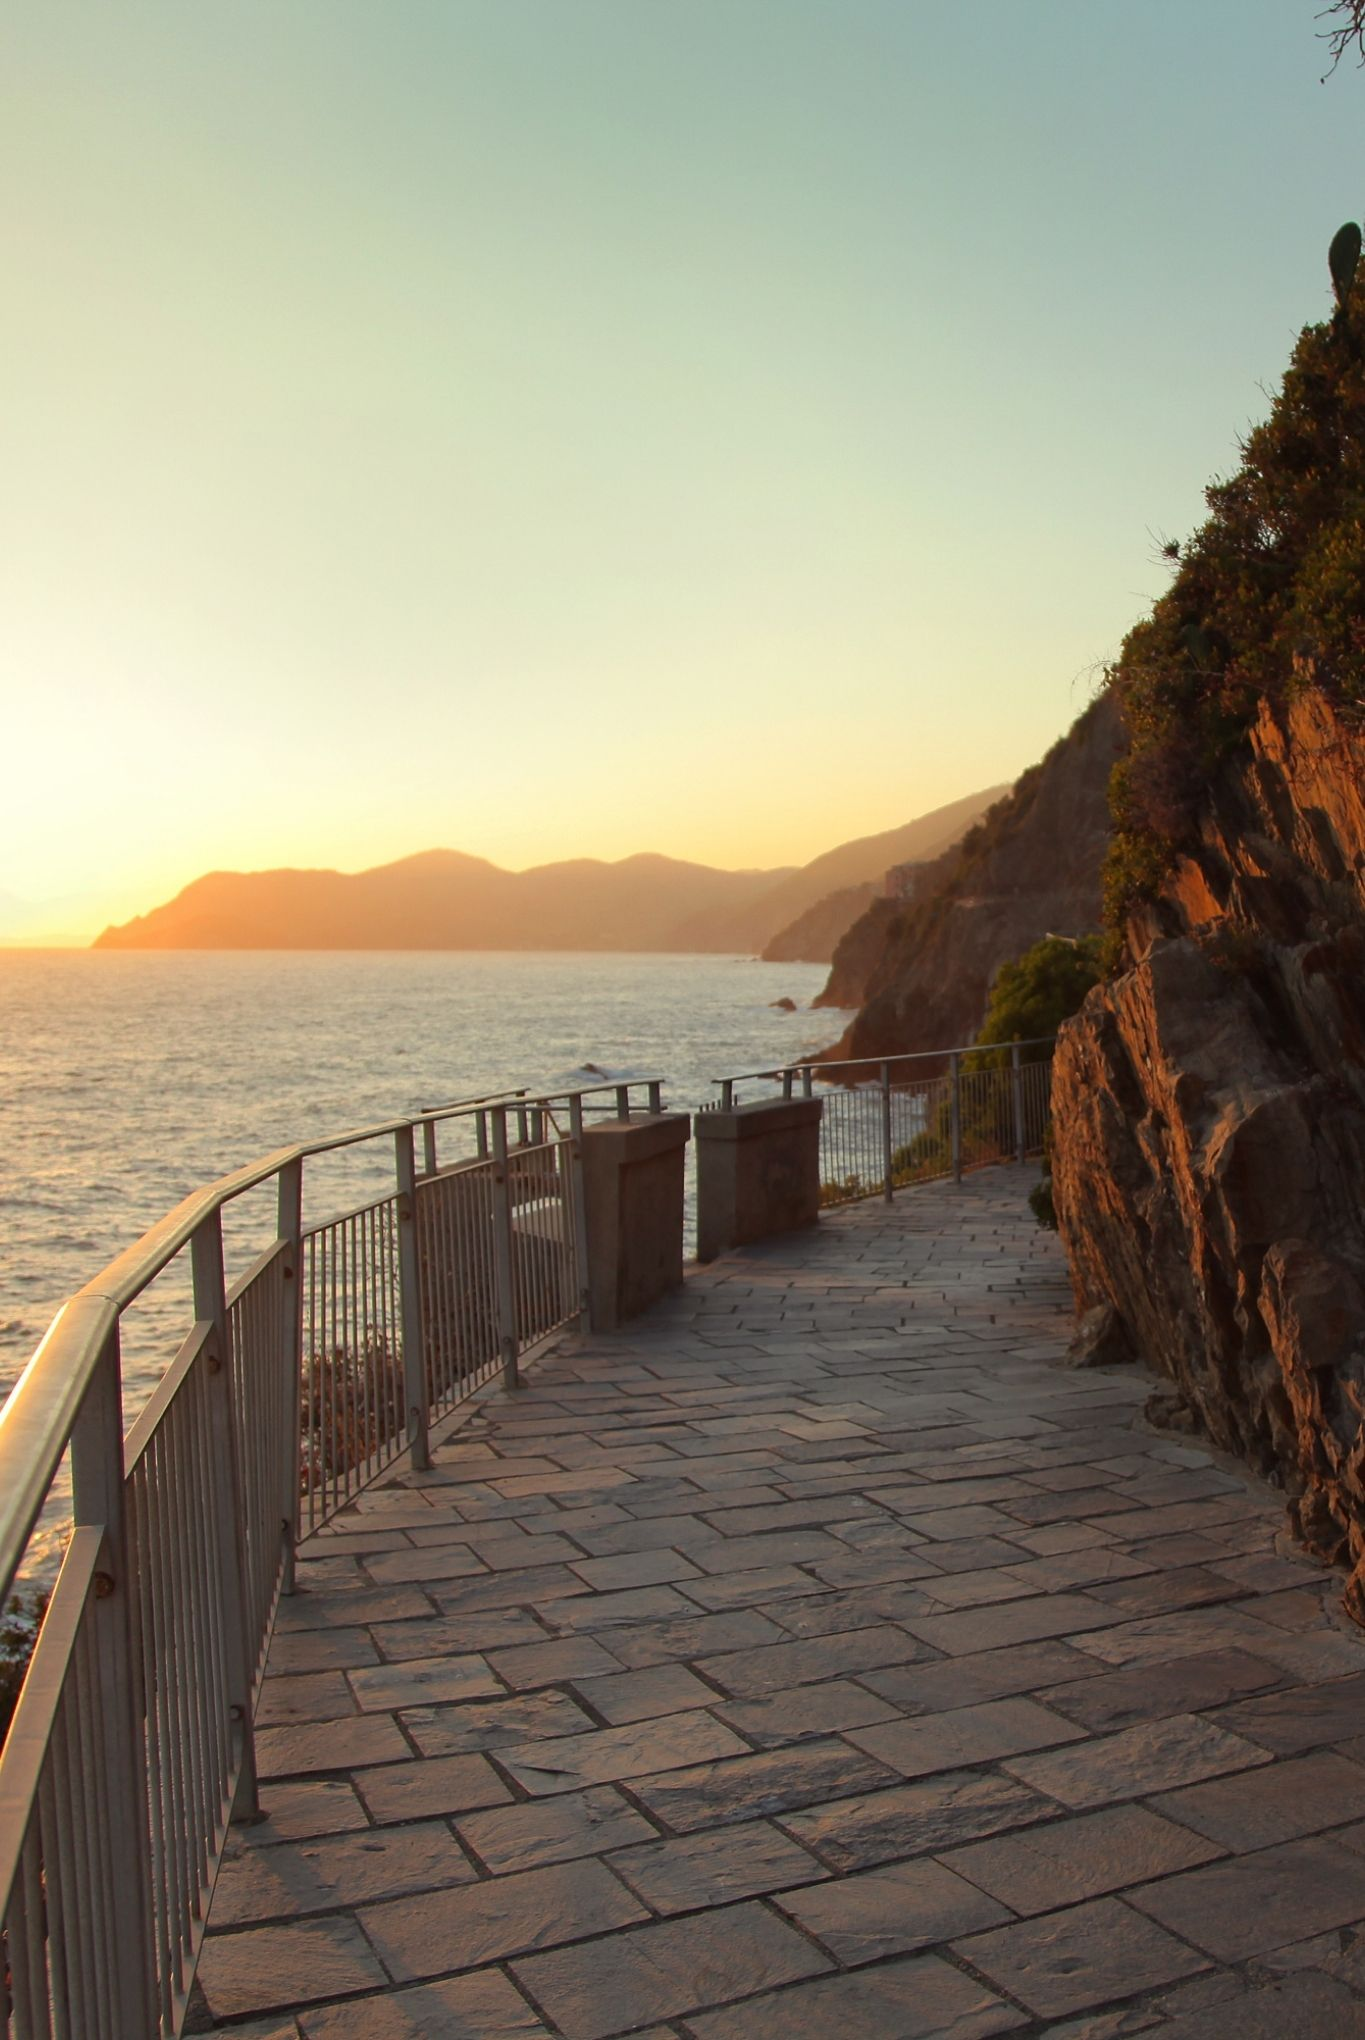 via dell amore path at sunset along coast in cinque terre italy